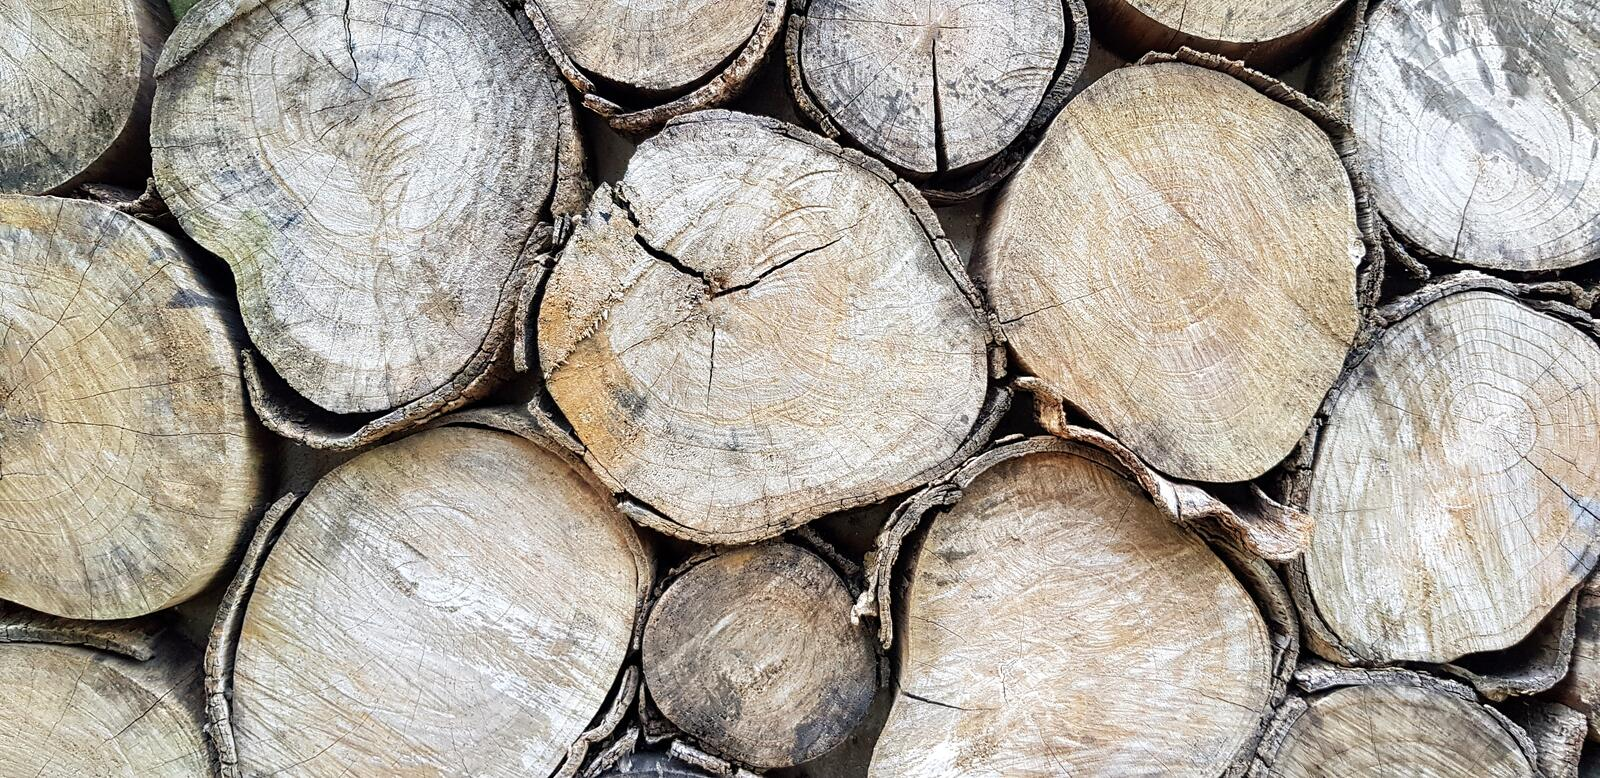 Close up log, wood pile or timber stack for background. Art wallpaper, Natural material, Abstract and Round shape concept royalty free stock photography